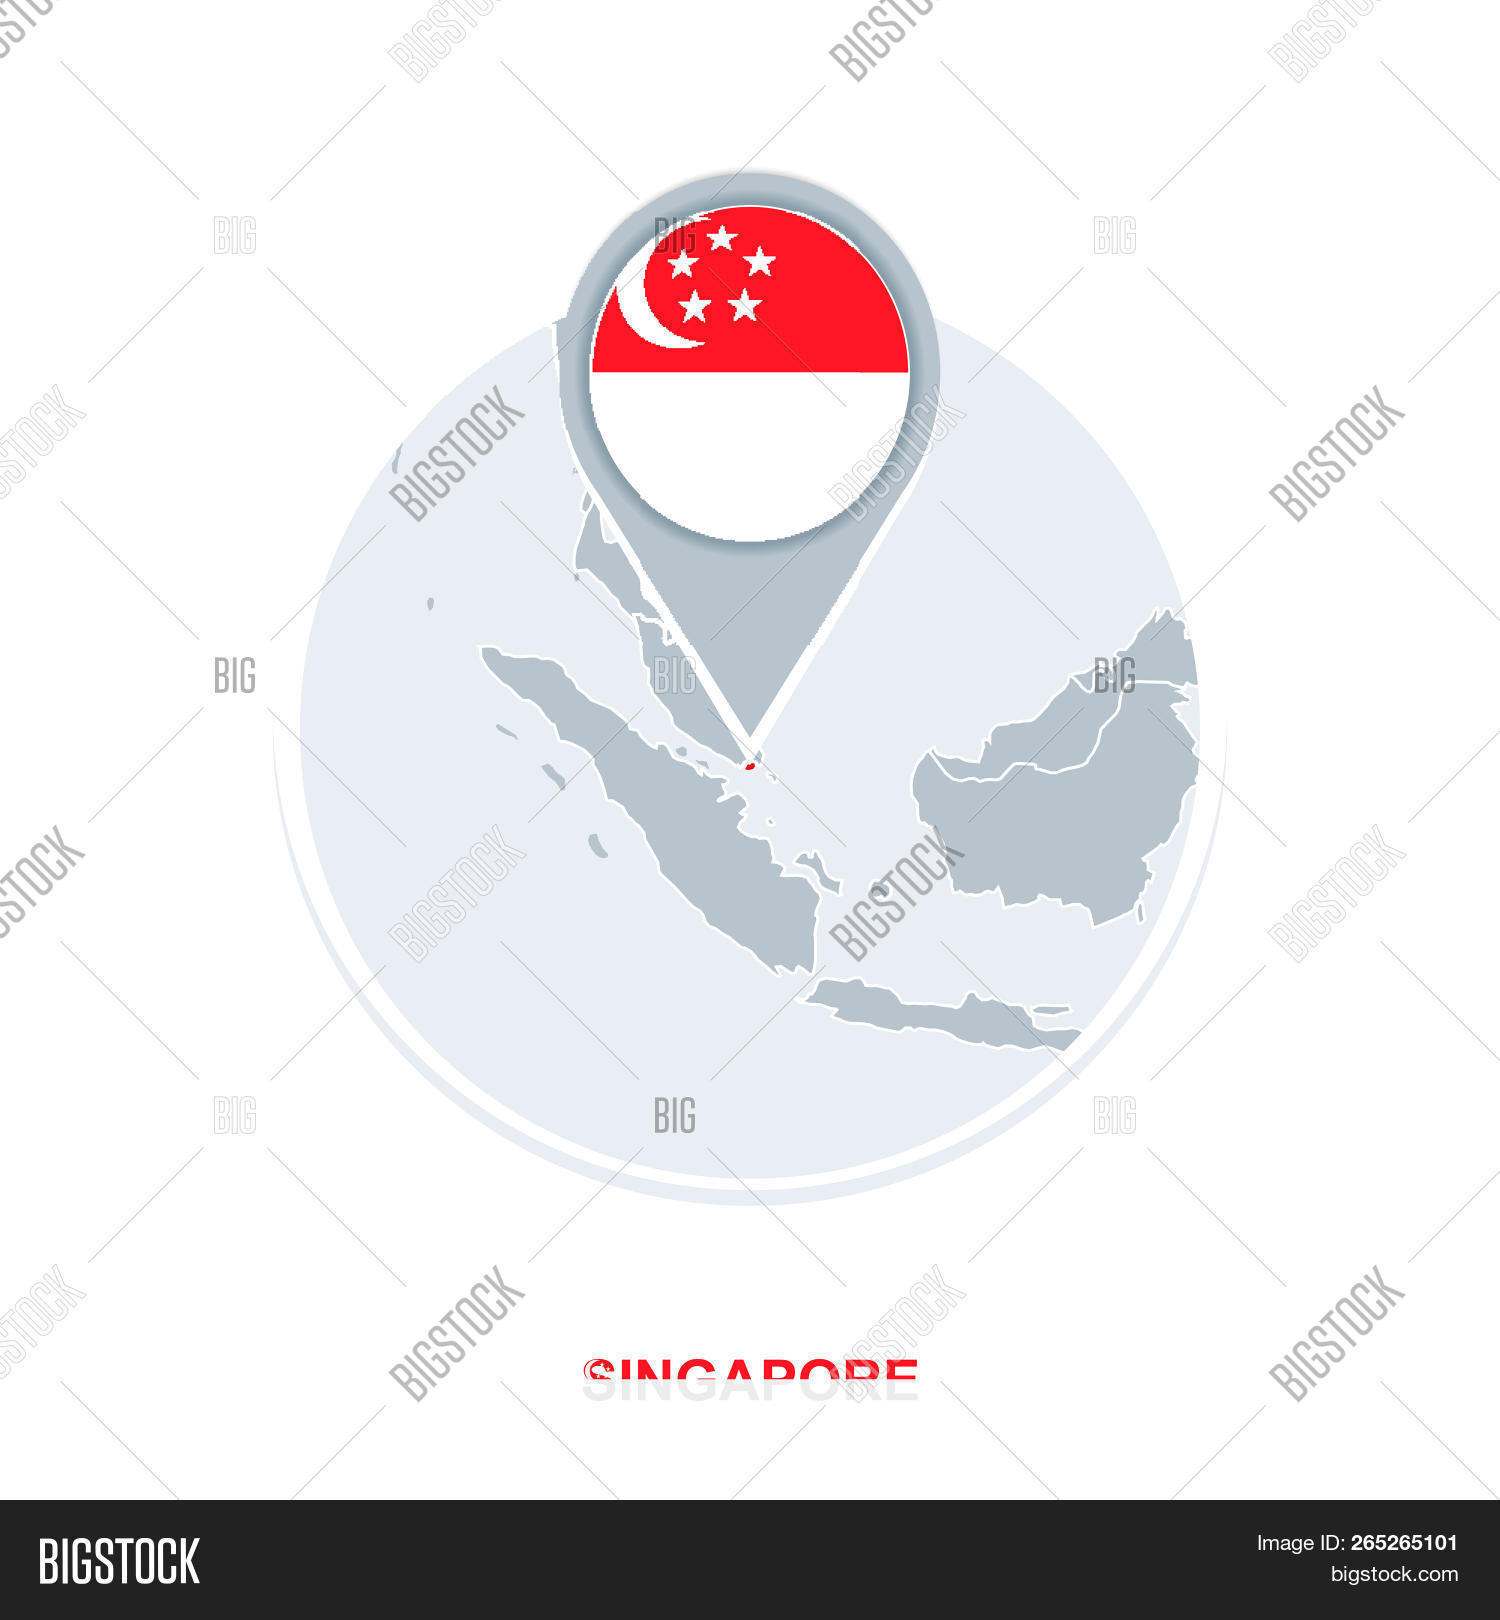 Singapore Map Flag, Vector & Photo (Free Trial) | Bigstock